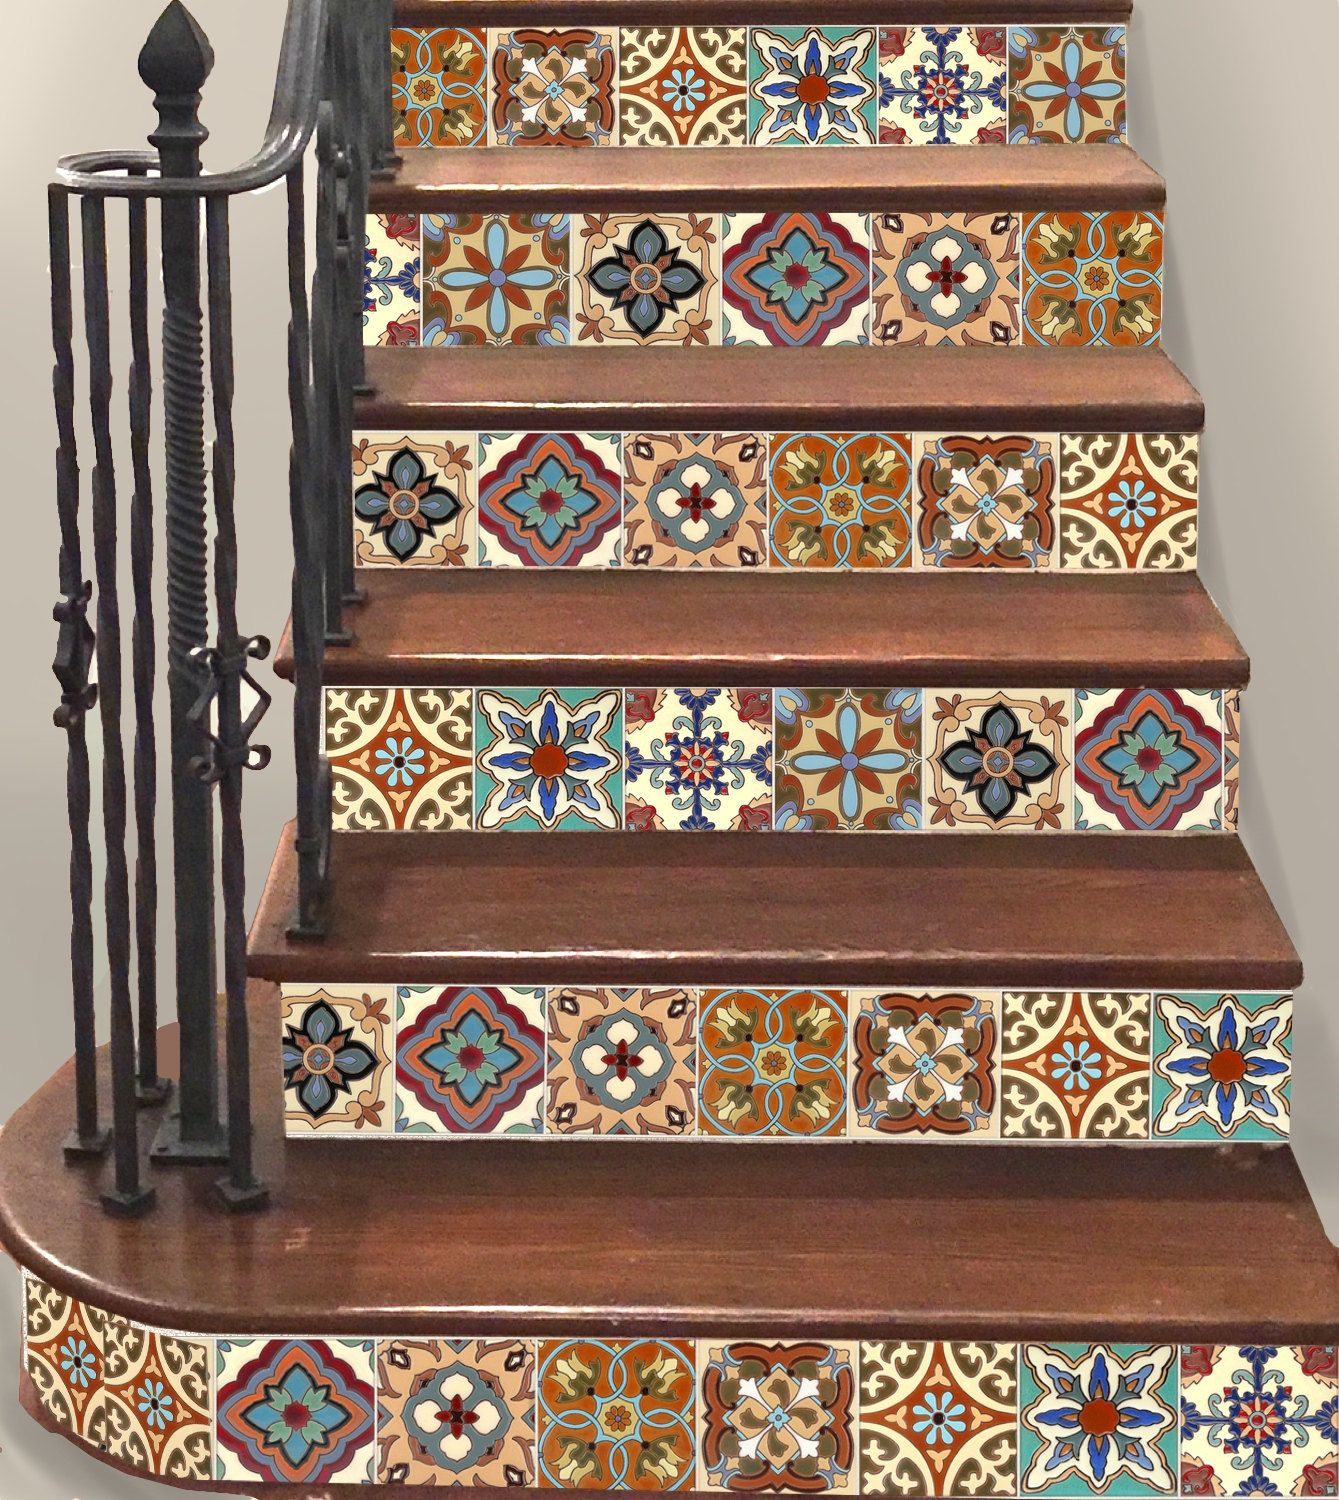 Gentil Stair Riser Stickers, Looks Like Real Mexican Talavera Tiles, Just Peel And  Stick For A Stunning Stairs! Www.snazzydecal.etsy.com